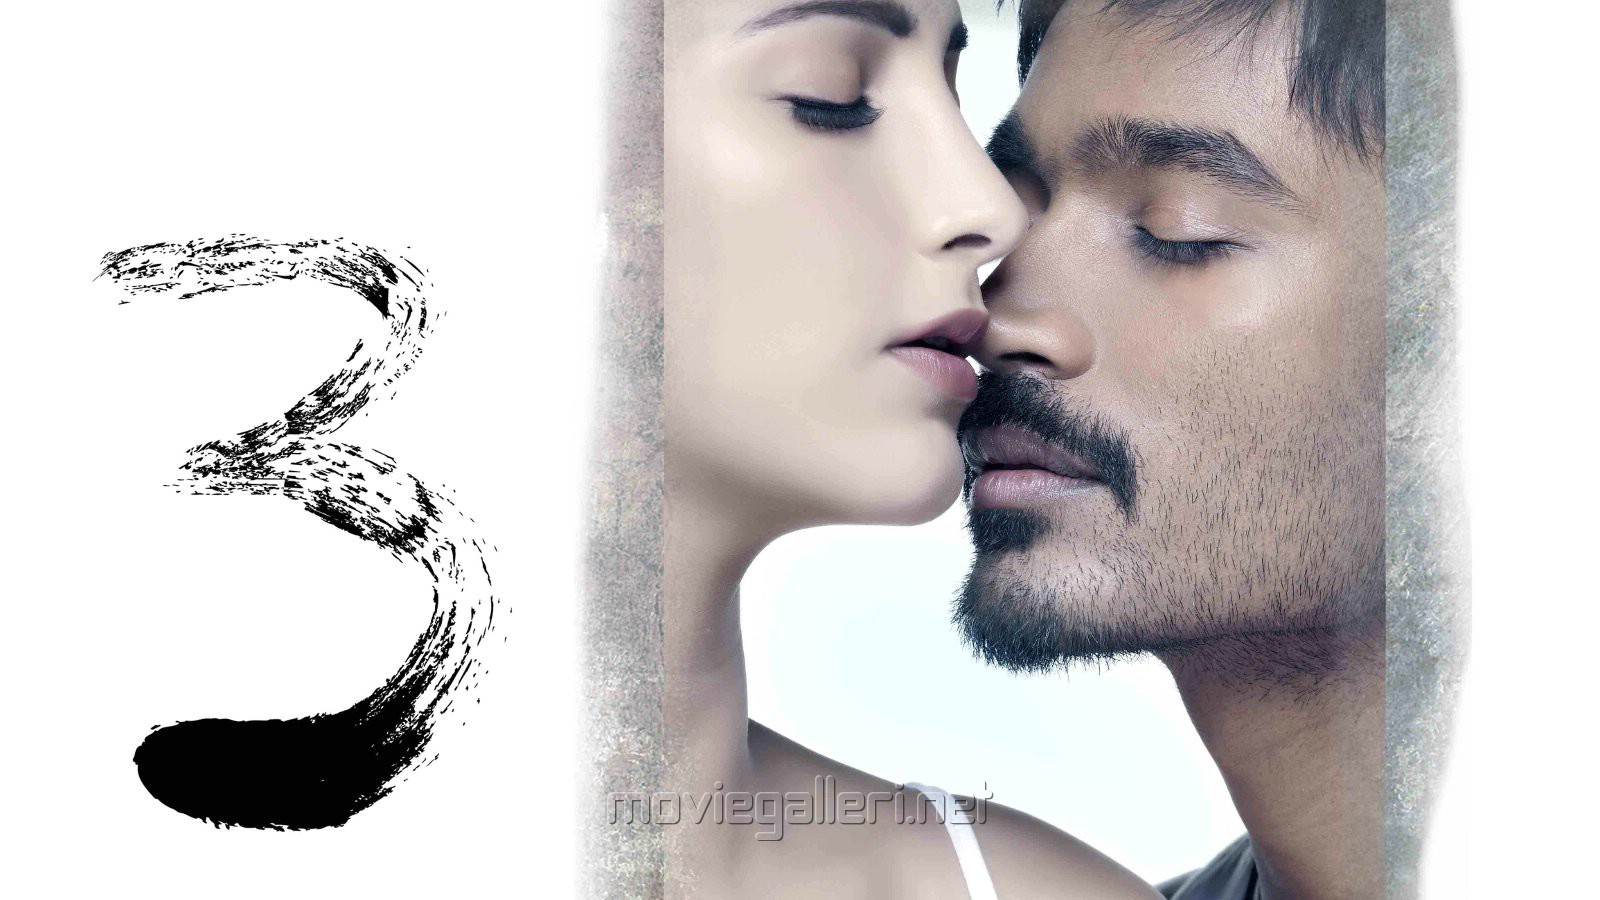 http://3.bp.blogspot.com/-Wnt2JOuVvjs/TvX4YVQJB9I/AAAAAAAAAzU/T9zLDJJC0ZM/s1600/dhanush_shruthi_3_movie_wallpapers_092.jpg